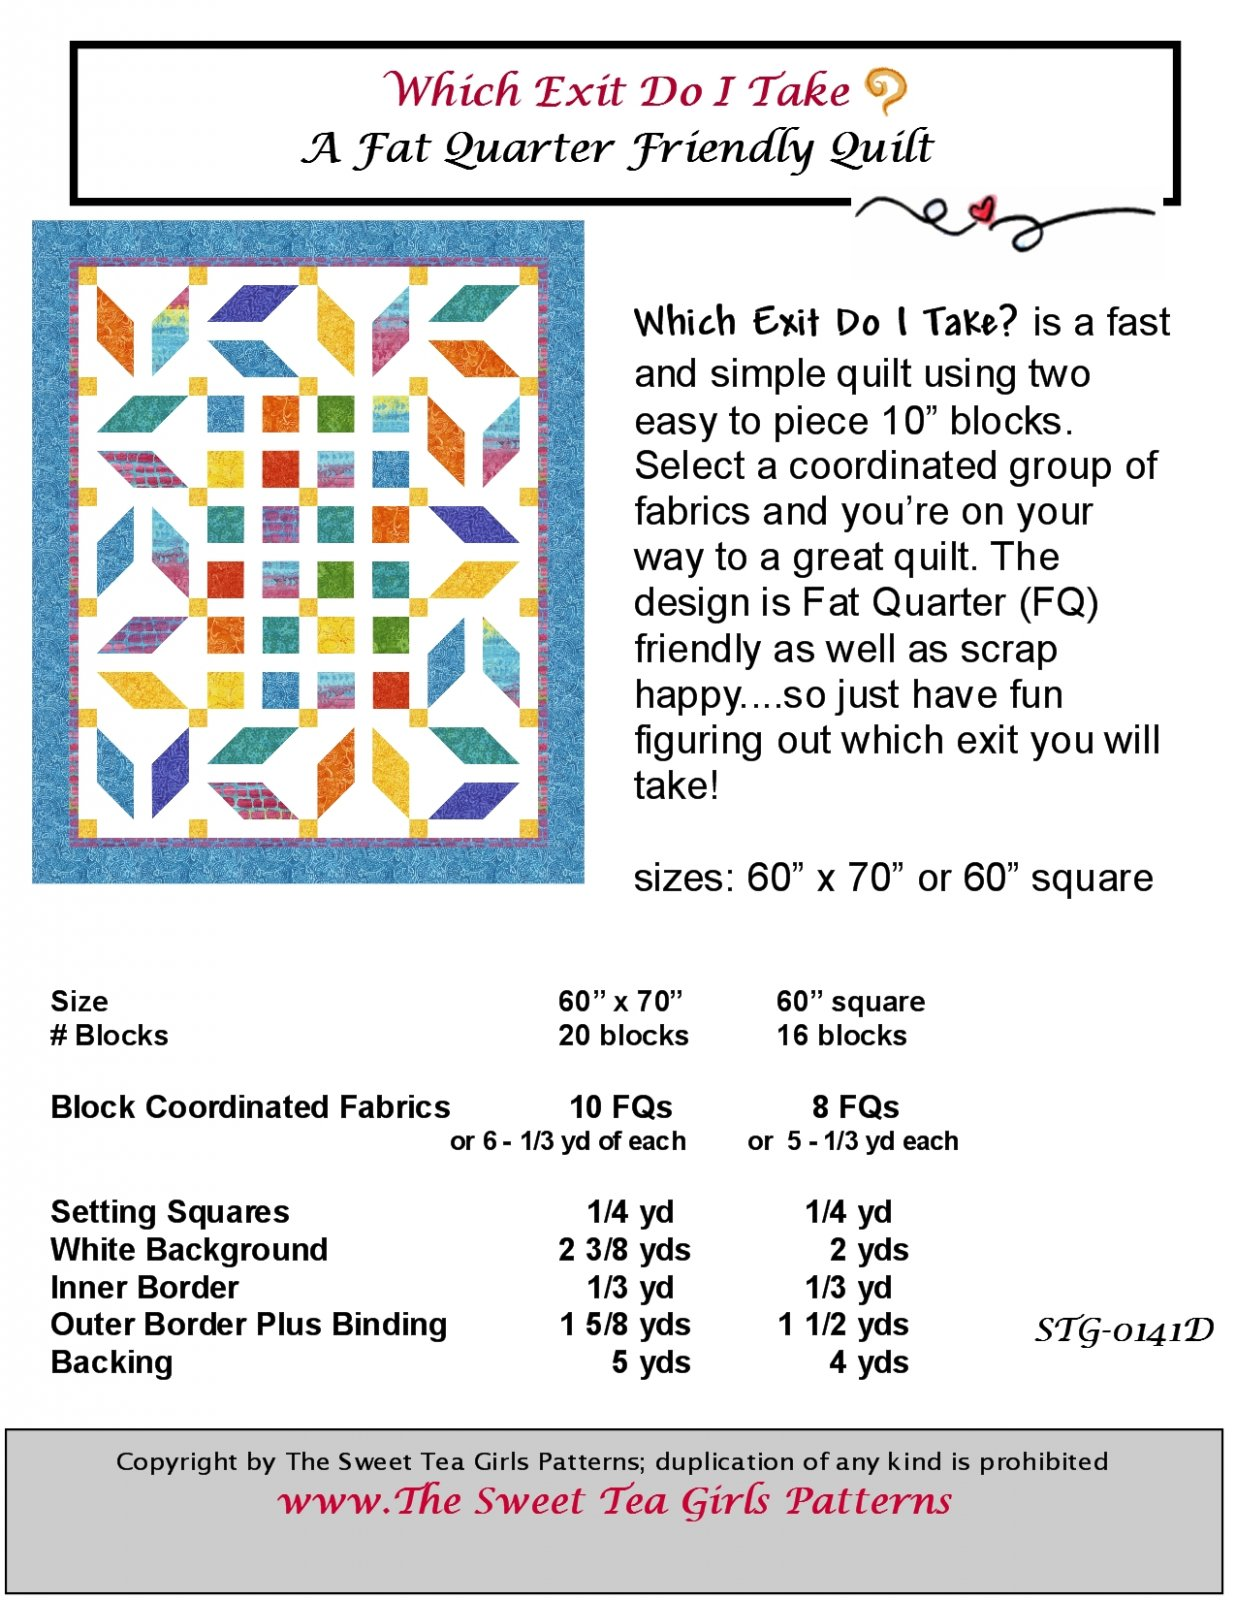 Which Exit Do I Take? Downloadable PDF Pattern